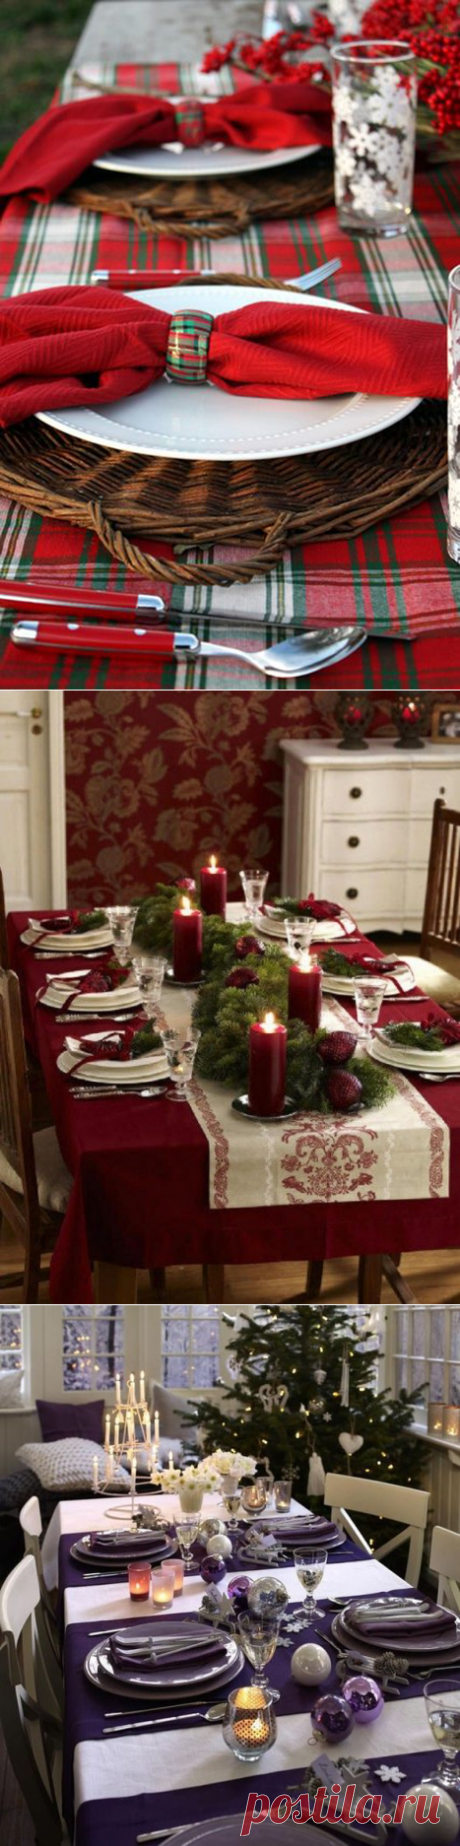 New Year's table layout: 5 rules and 18 charming examples \/ All for the woman